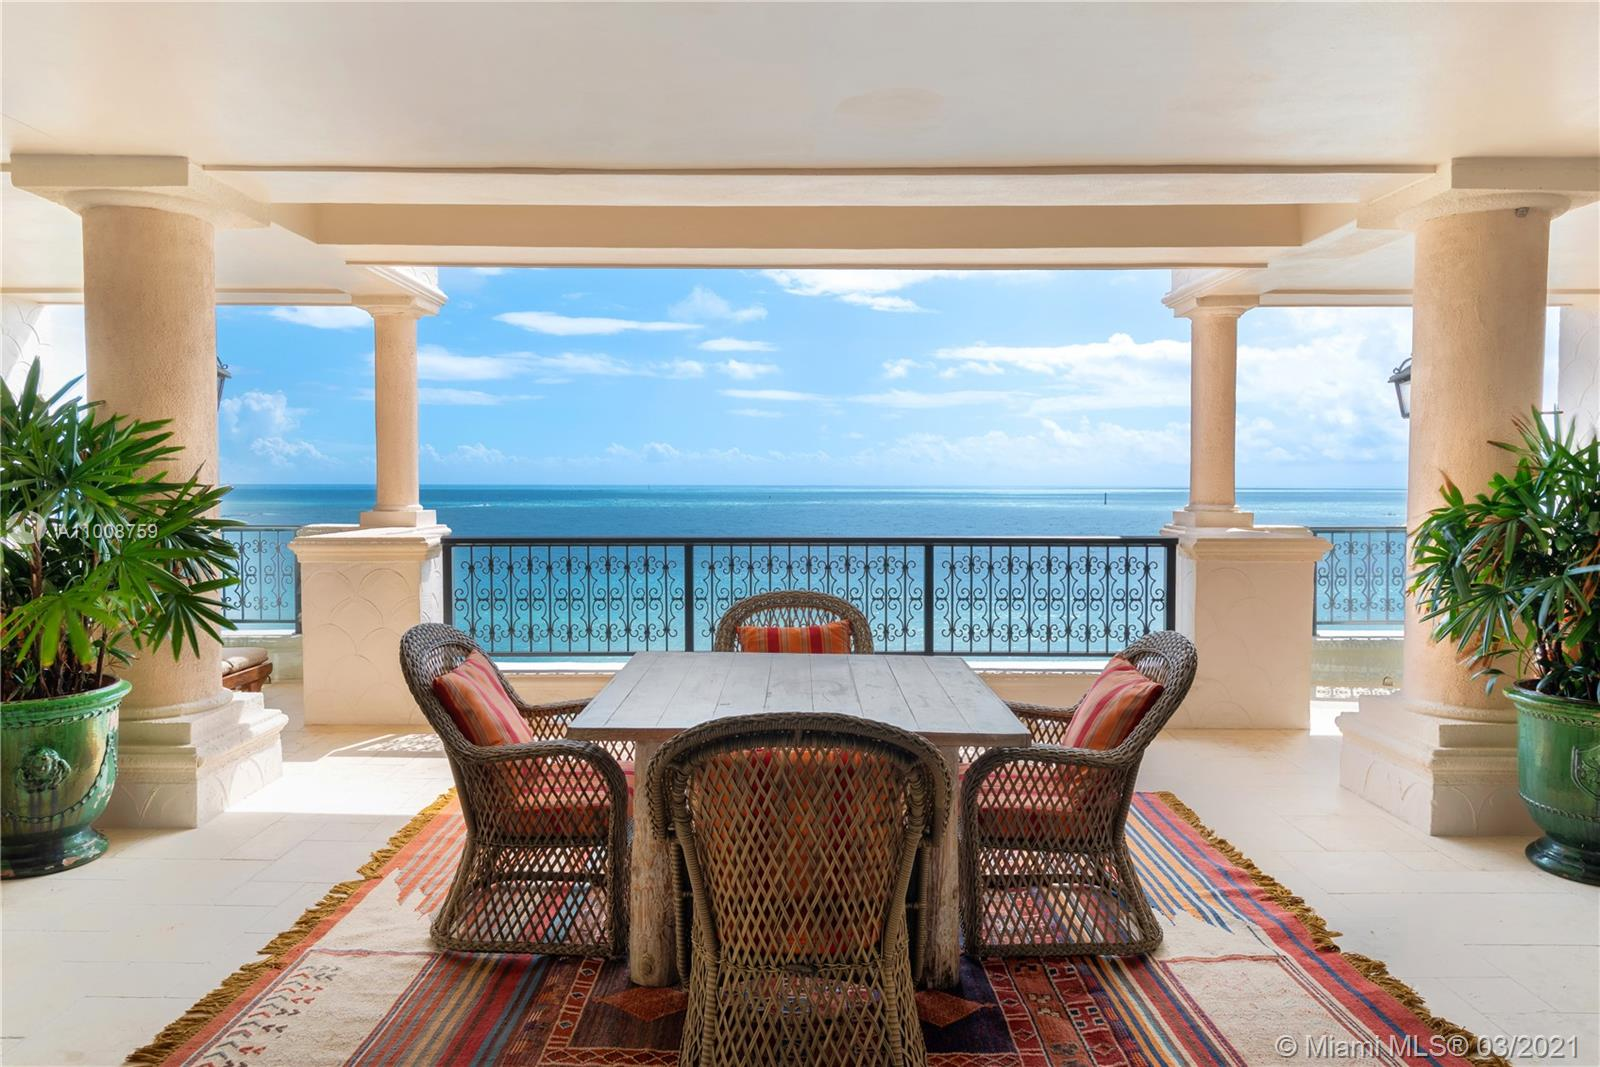 7882 Fisher Island Dr, Unit #7882 Luxury Real Estate